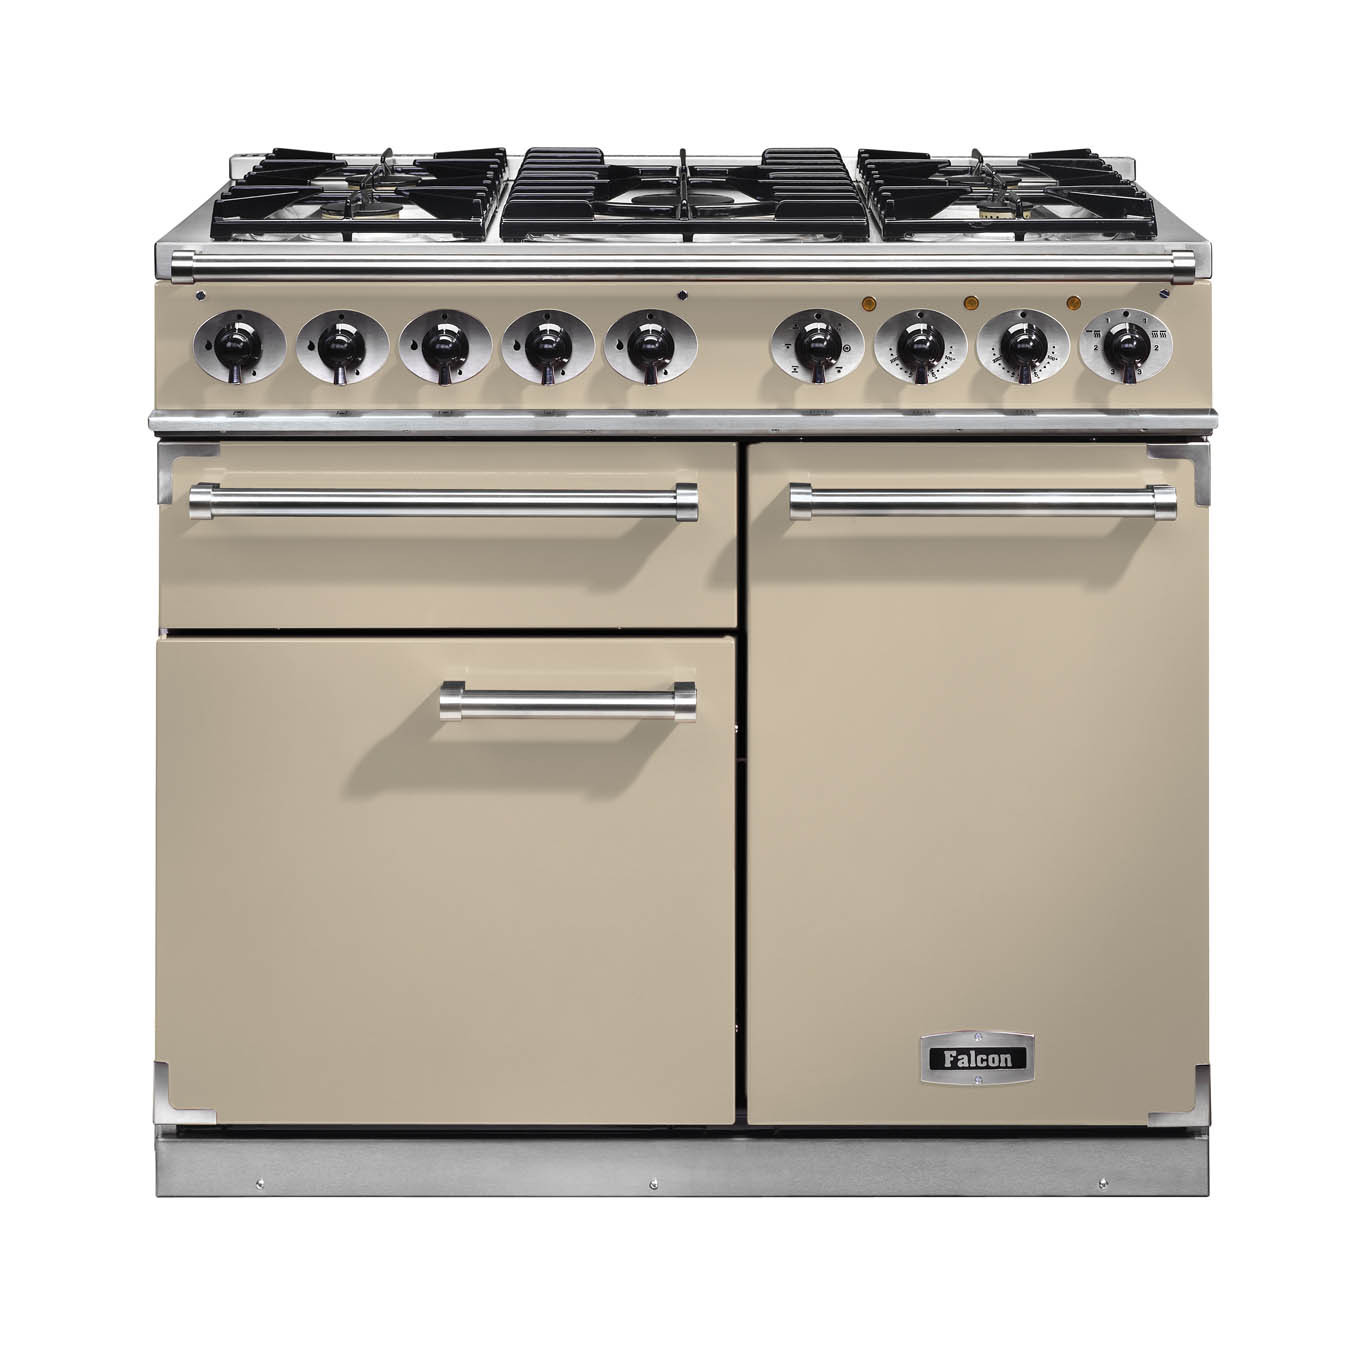 Falcon 1000 Deluxe Dual Fuel Cream Range Cooker with Matt Pan Supports